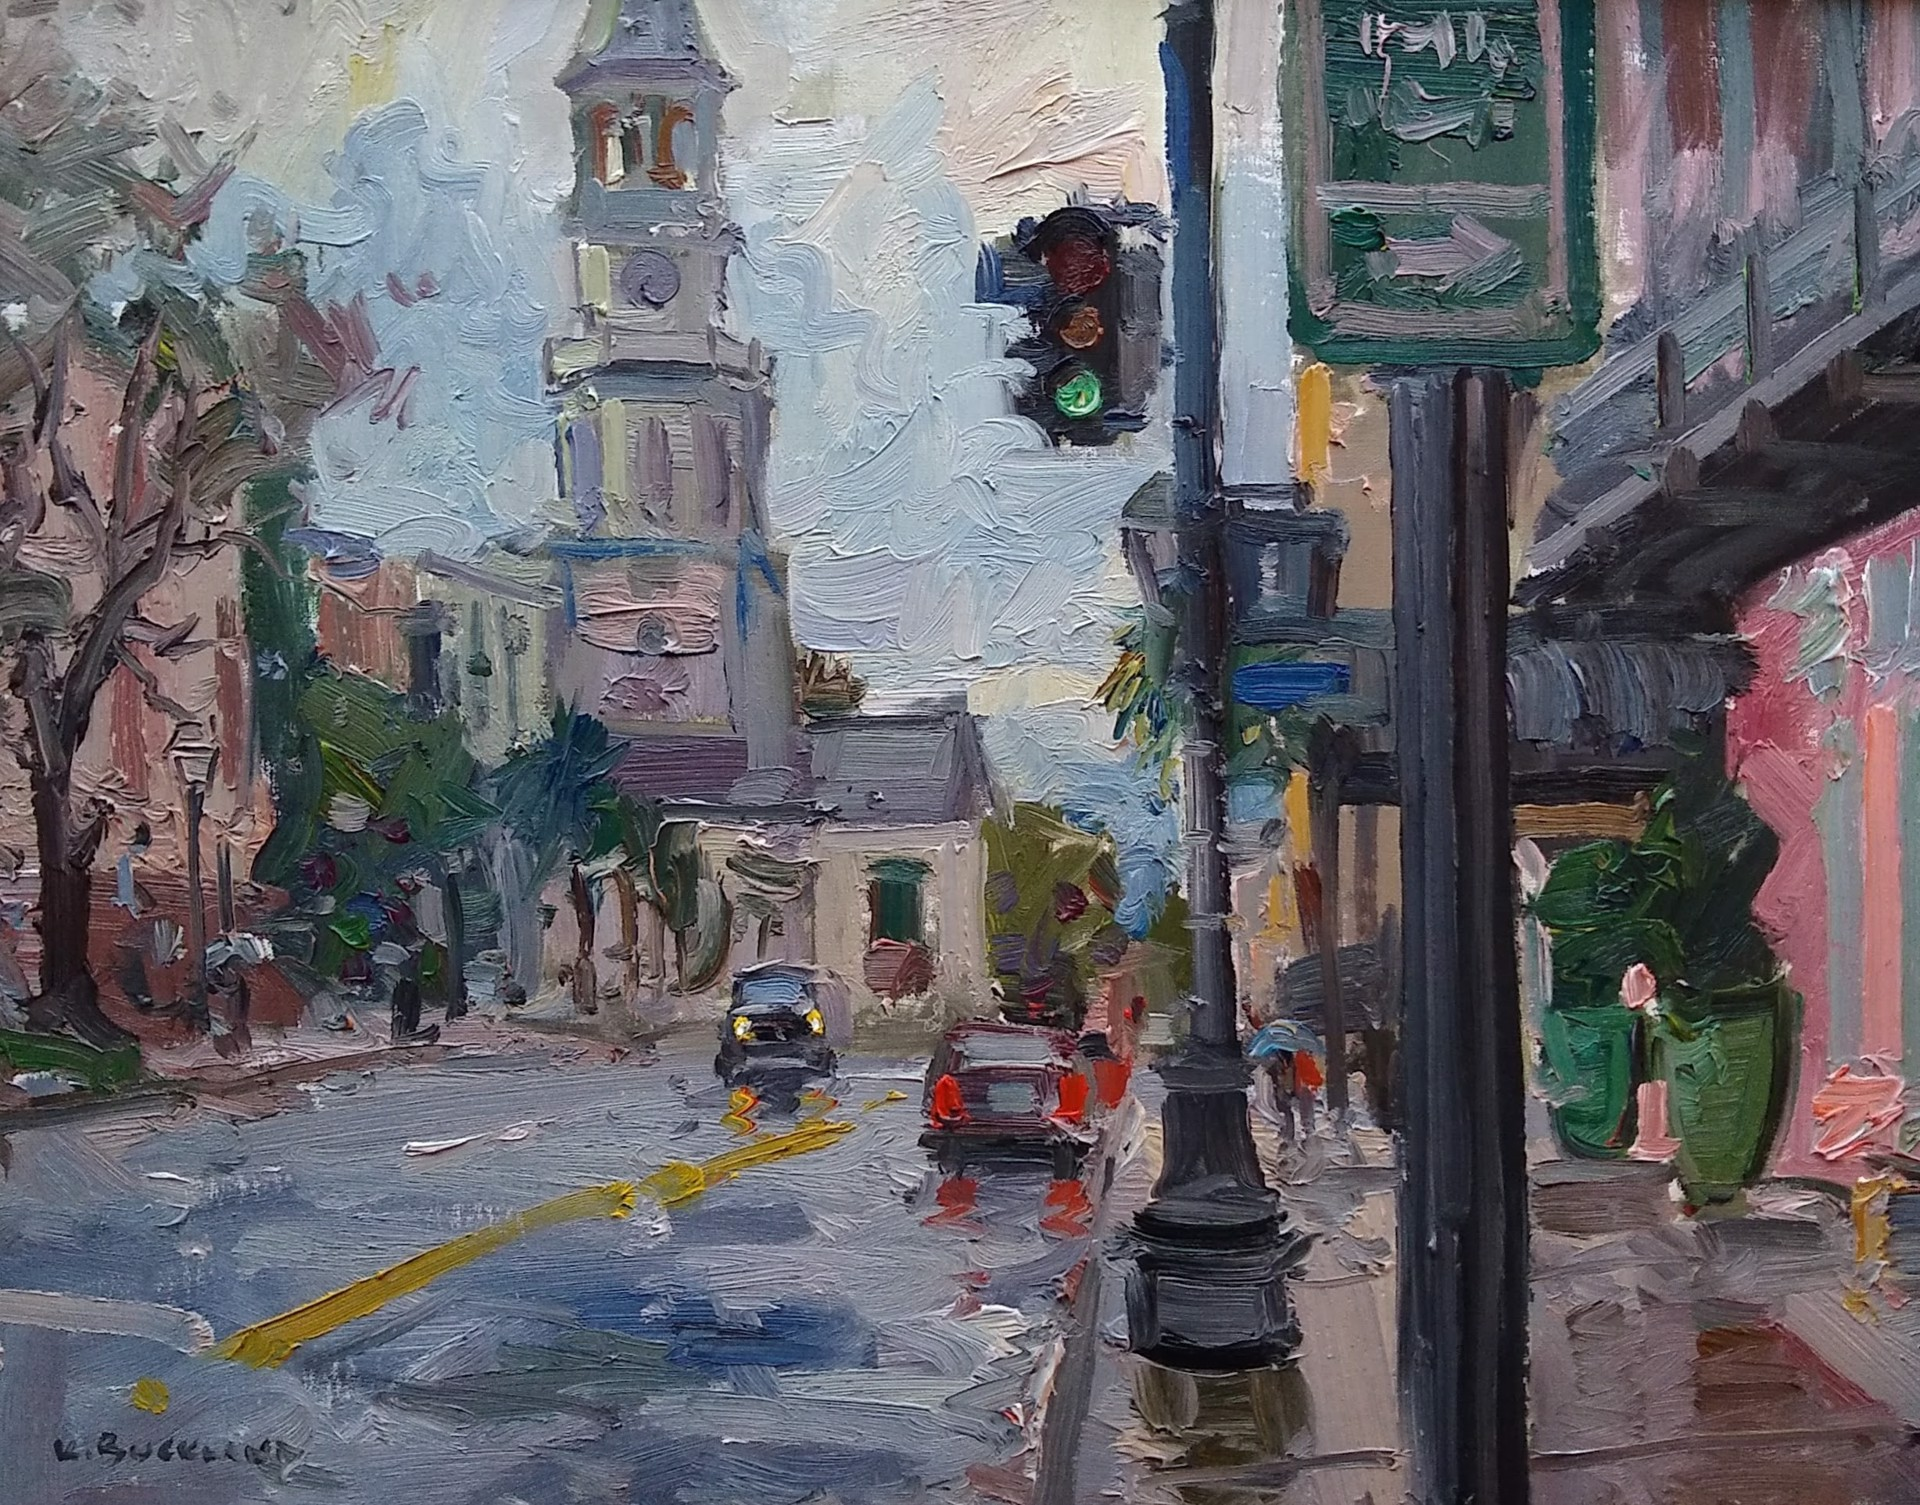 Morning Rain on Meeting Street by Kyle Buckland